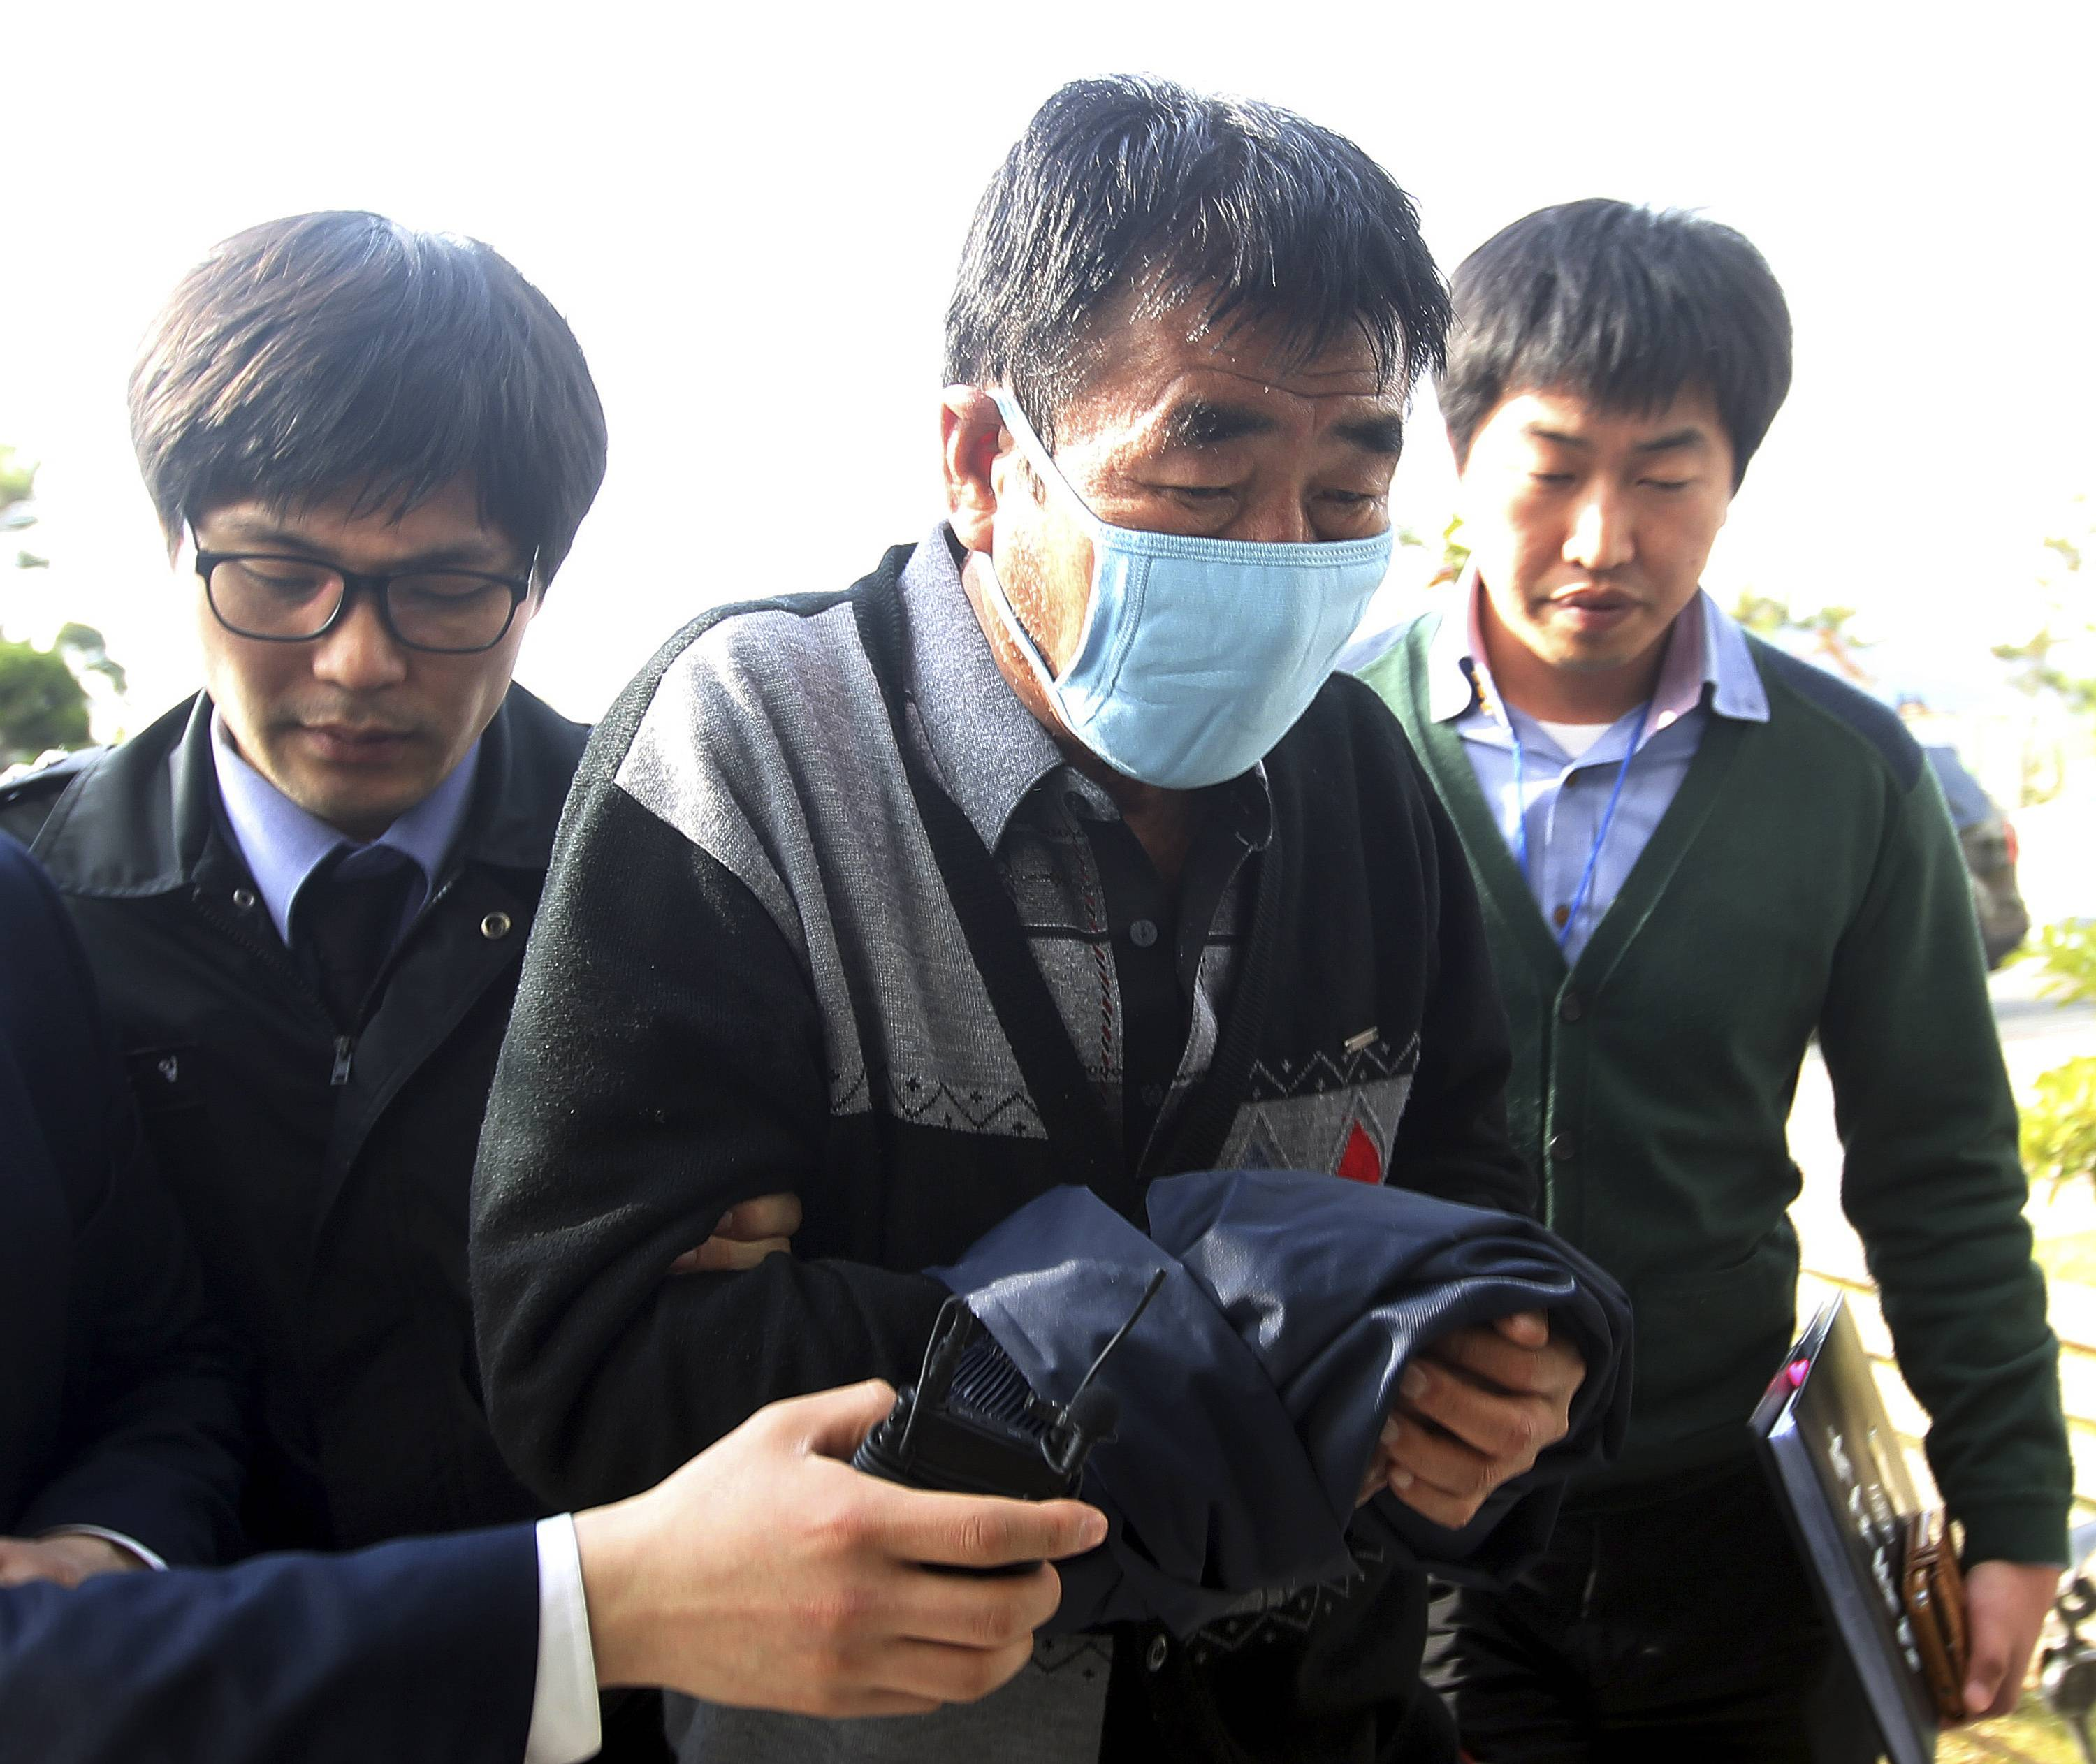 Lee Joon-seok, center, the captain of the sunken ferryboat Sewol, and two crew members have been arrested, accused of negligence and abandoning people in need. Six other crew members have been detained -- two of them on Tuesday -- though prosecutors have yet to obtain arrest warrants for them.